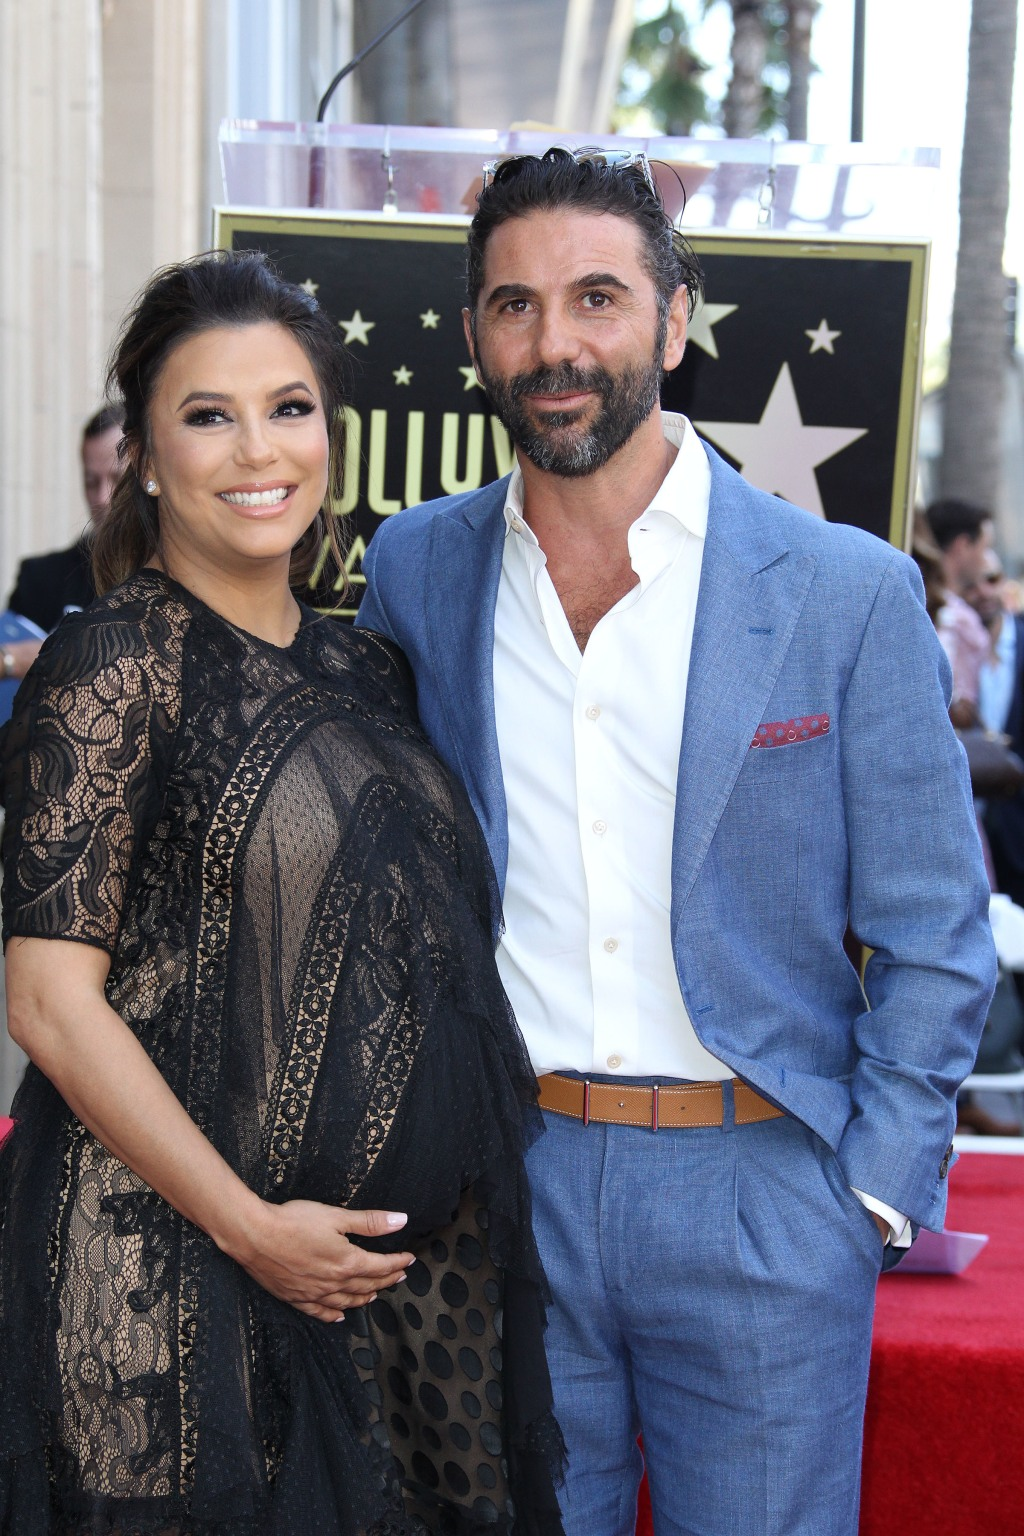 Eva Longoria and Jose Baston